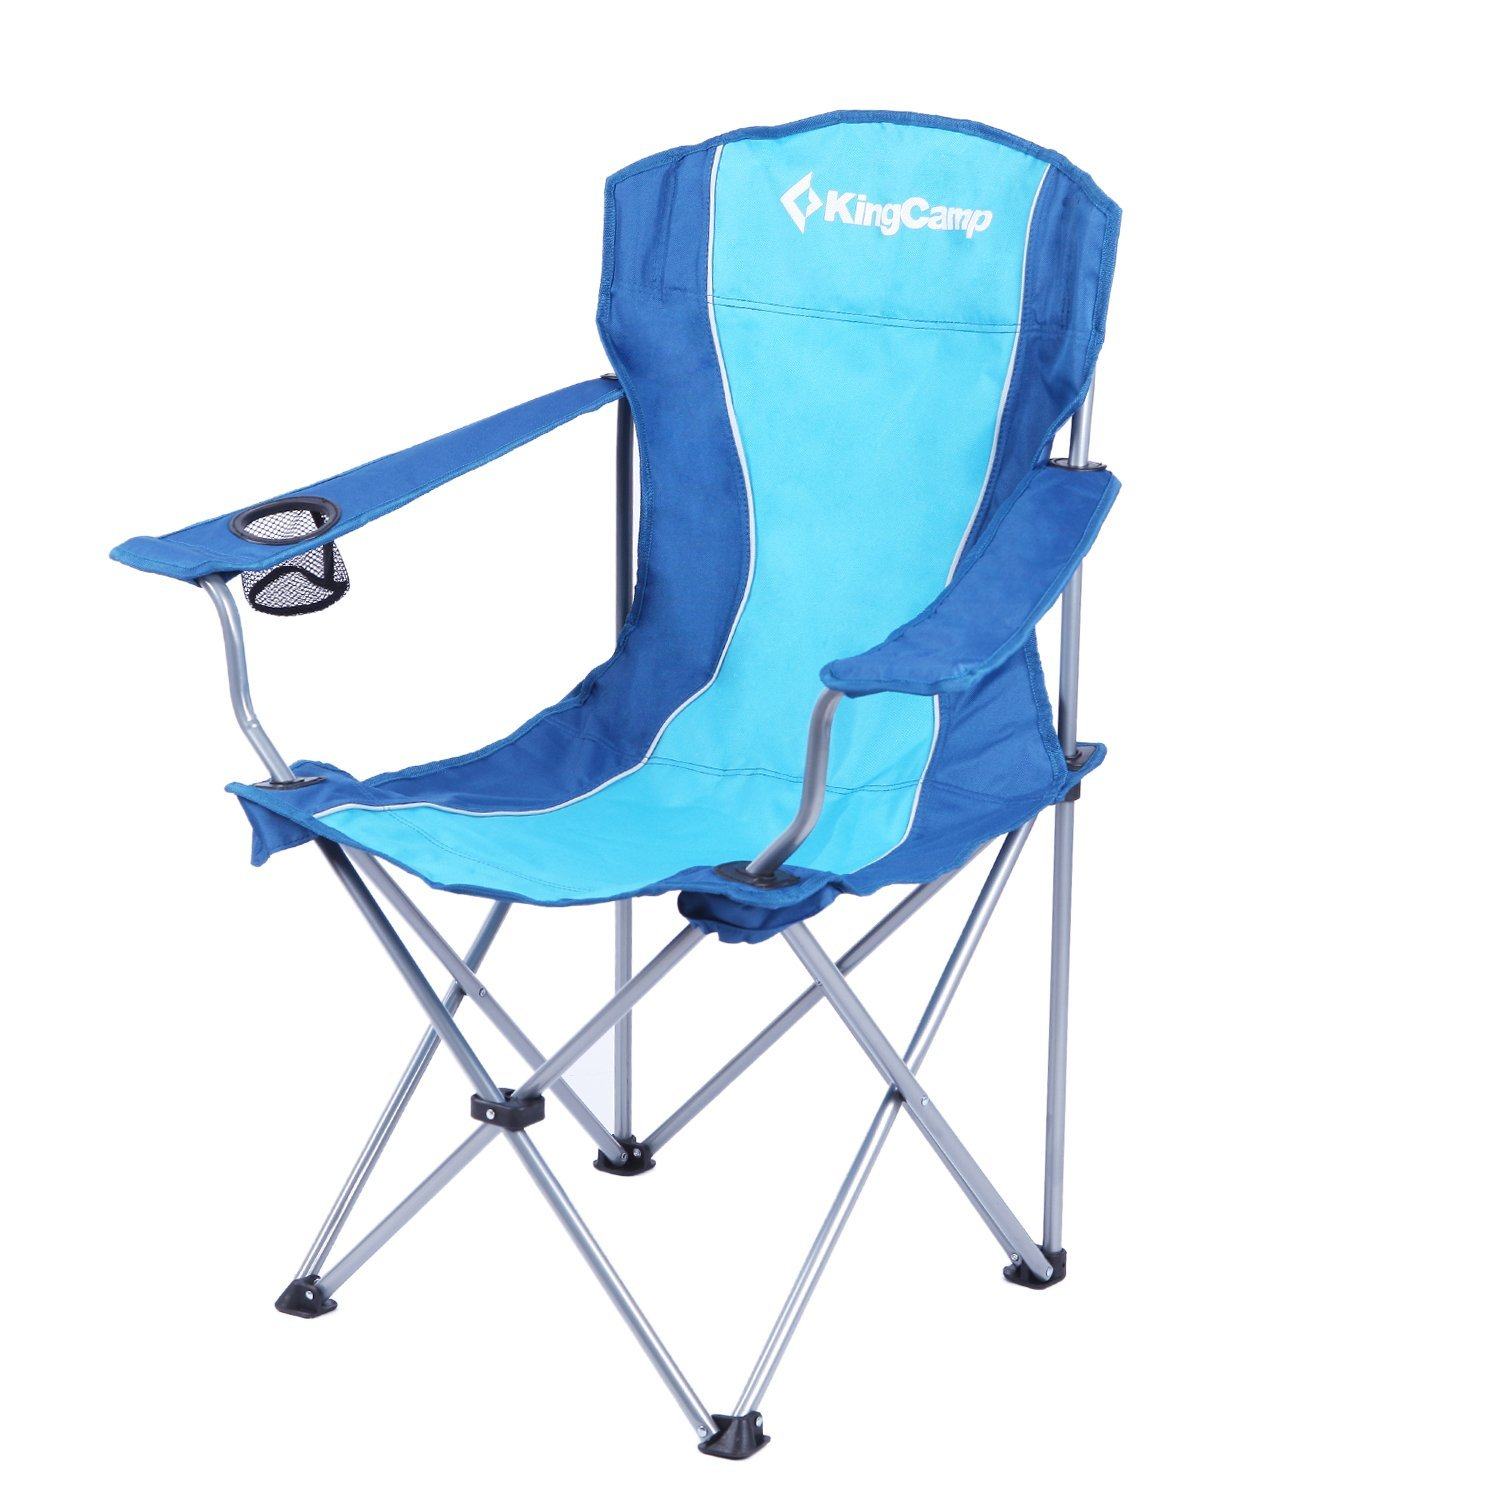 KingCamp Folding Camp Chair Quad Steel Frame Padded With Armrest And Mesh  Cup Holder Oversized Light